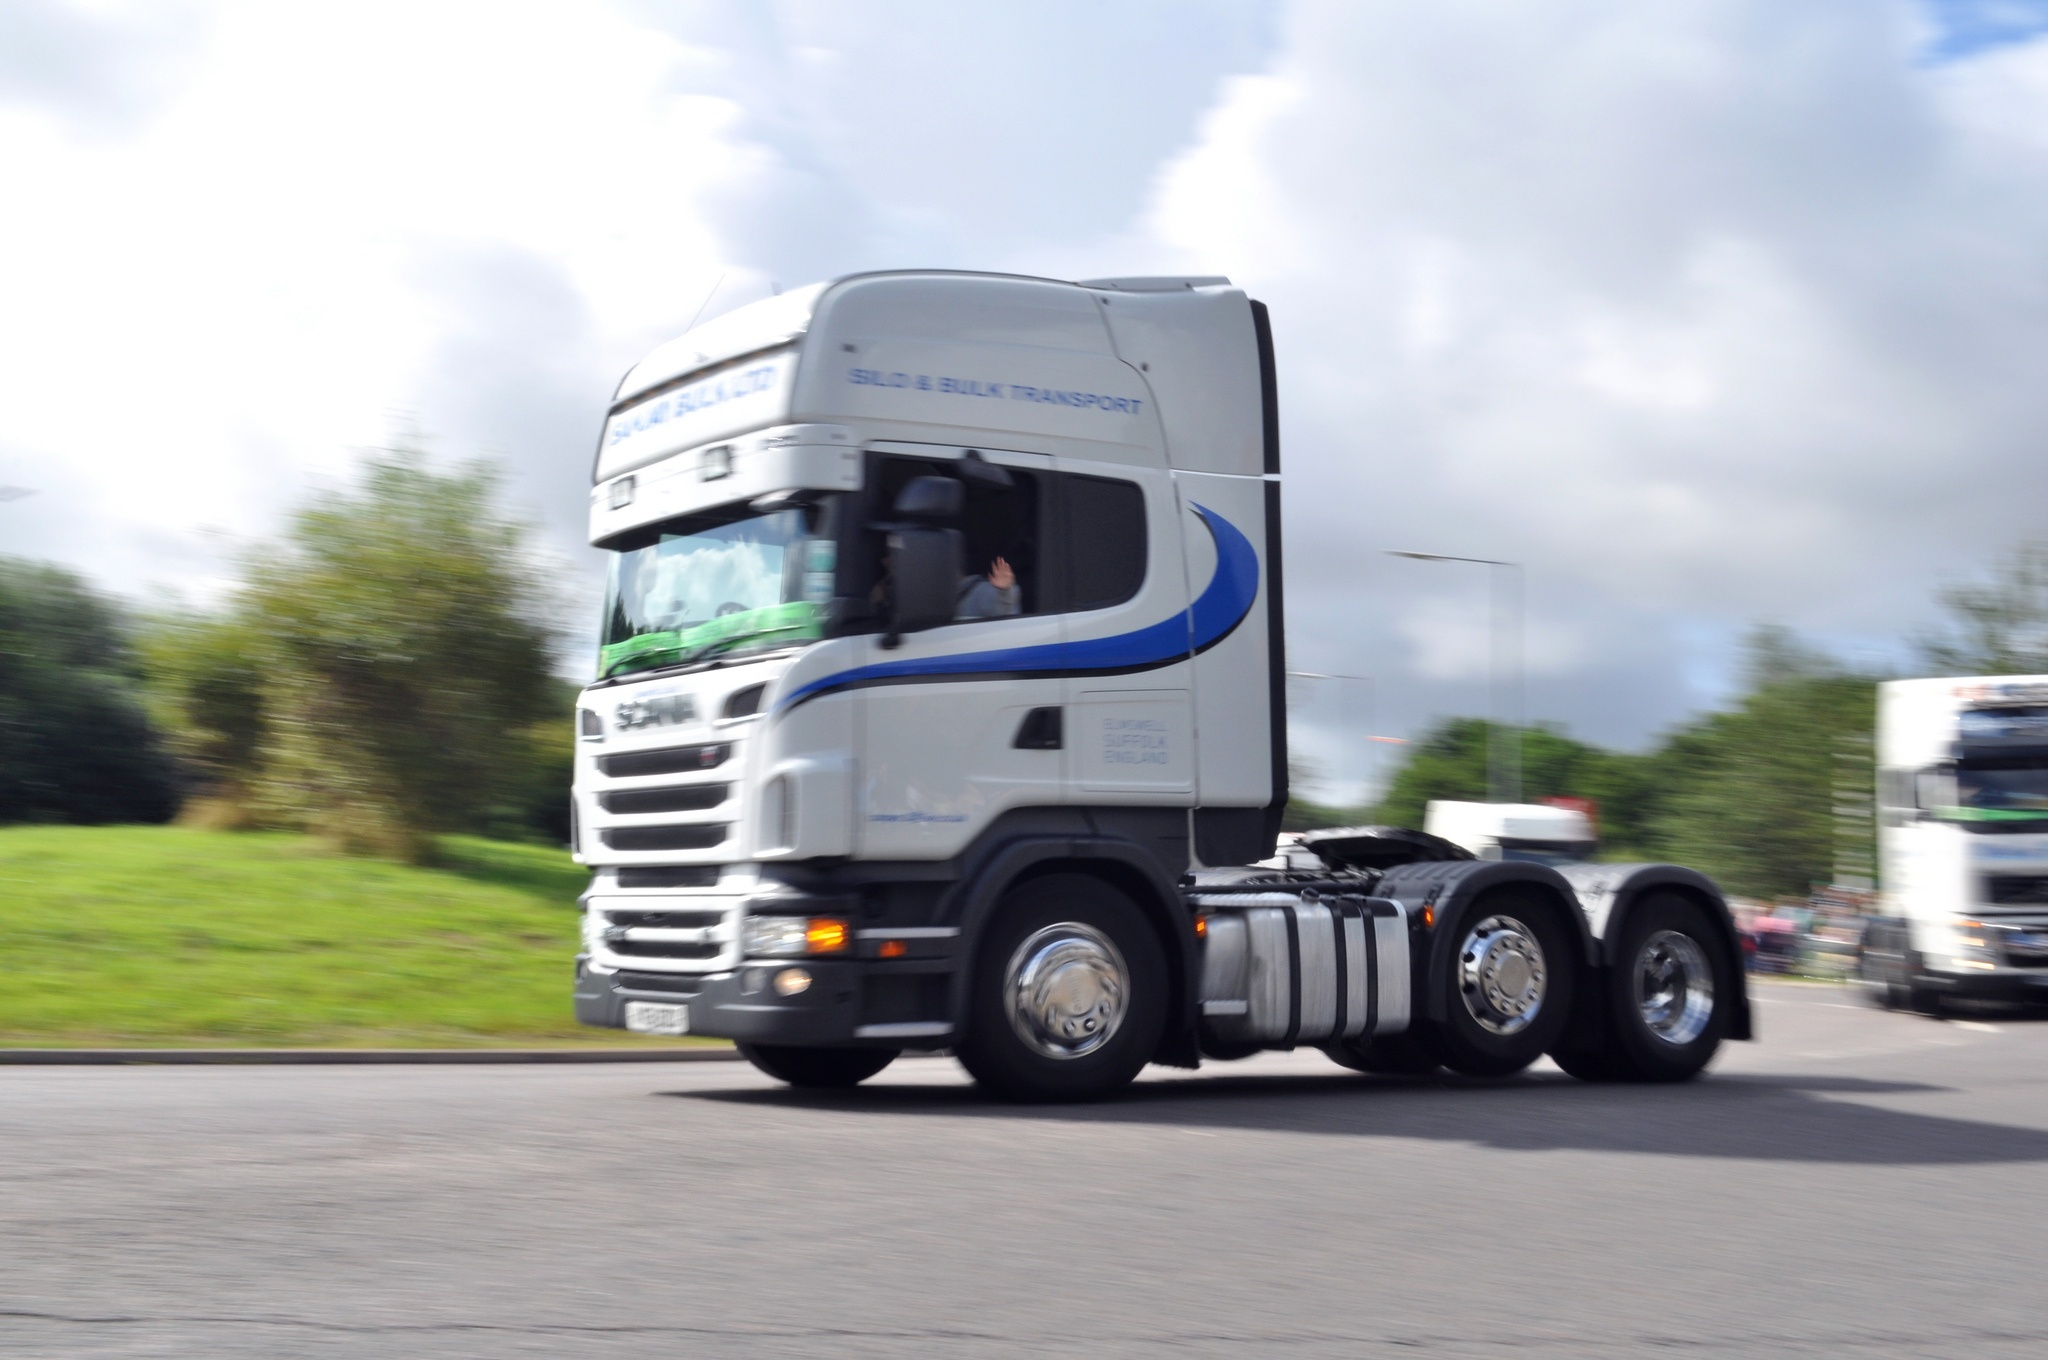 A white HGV truck with no trailer